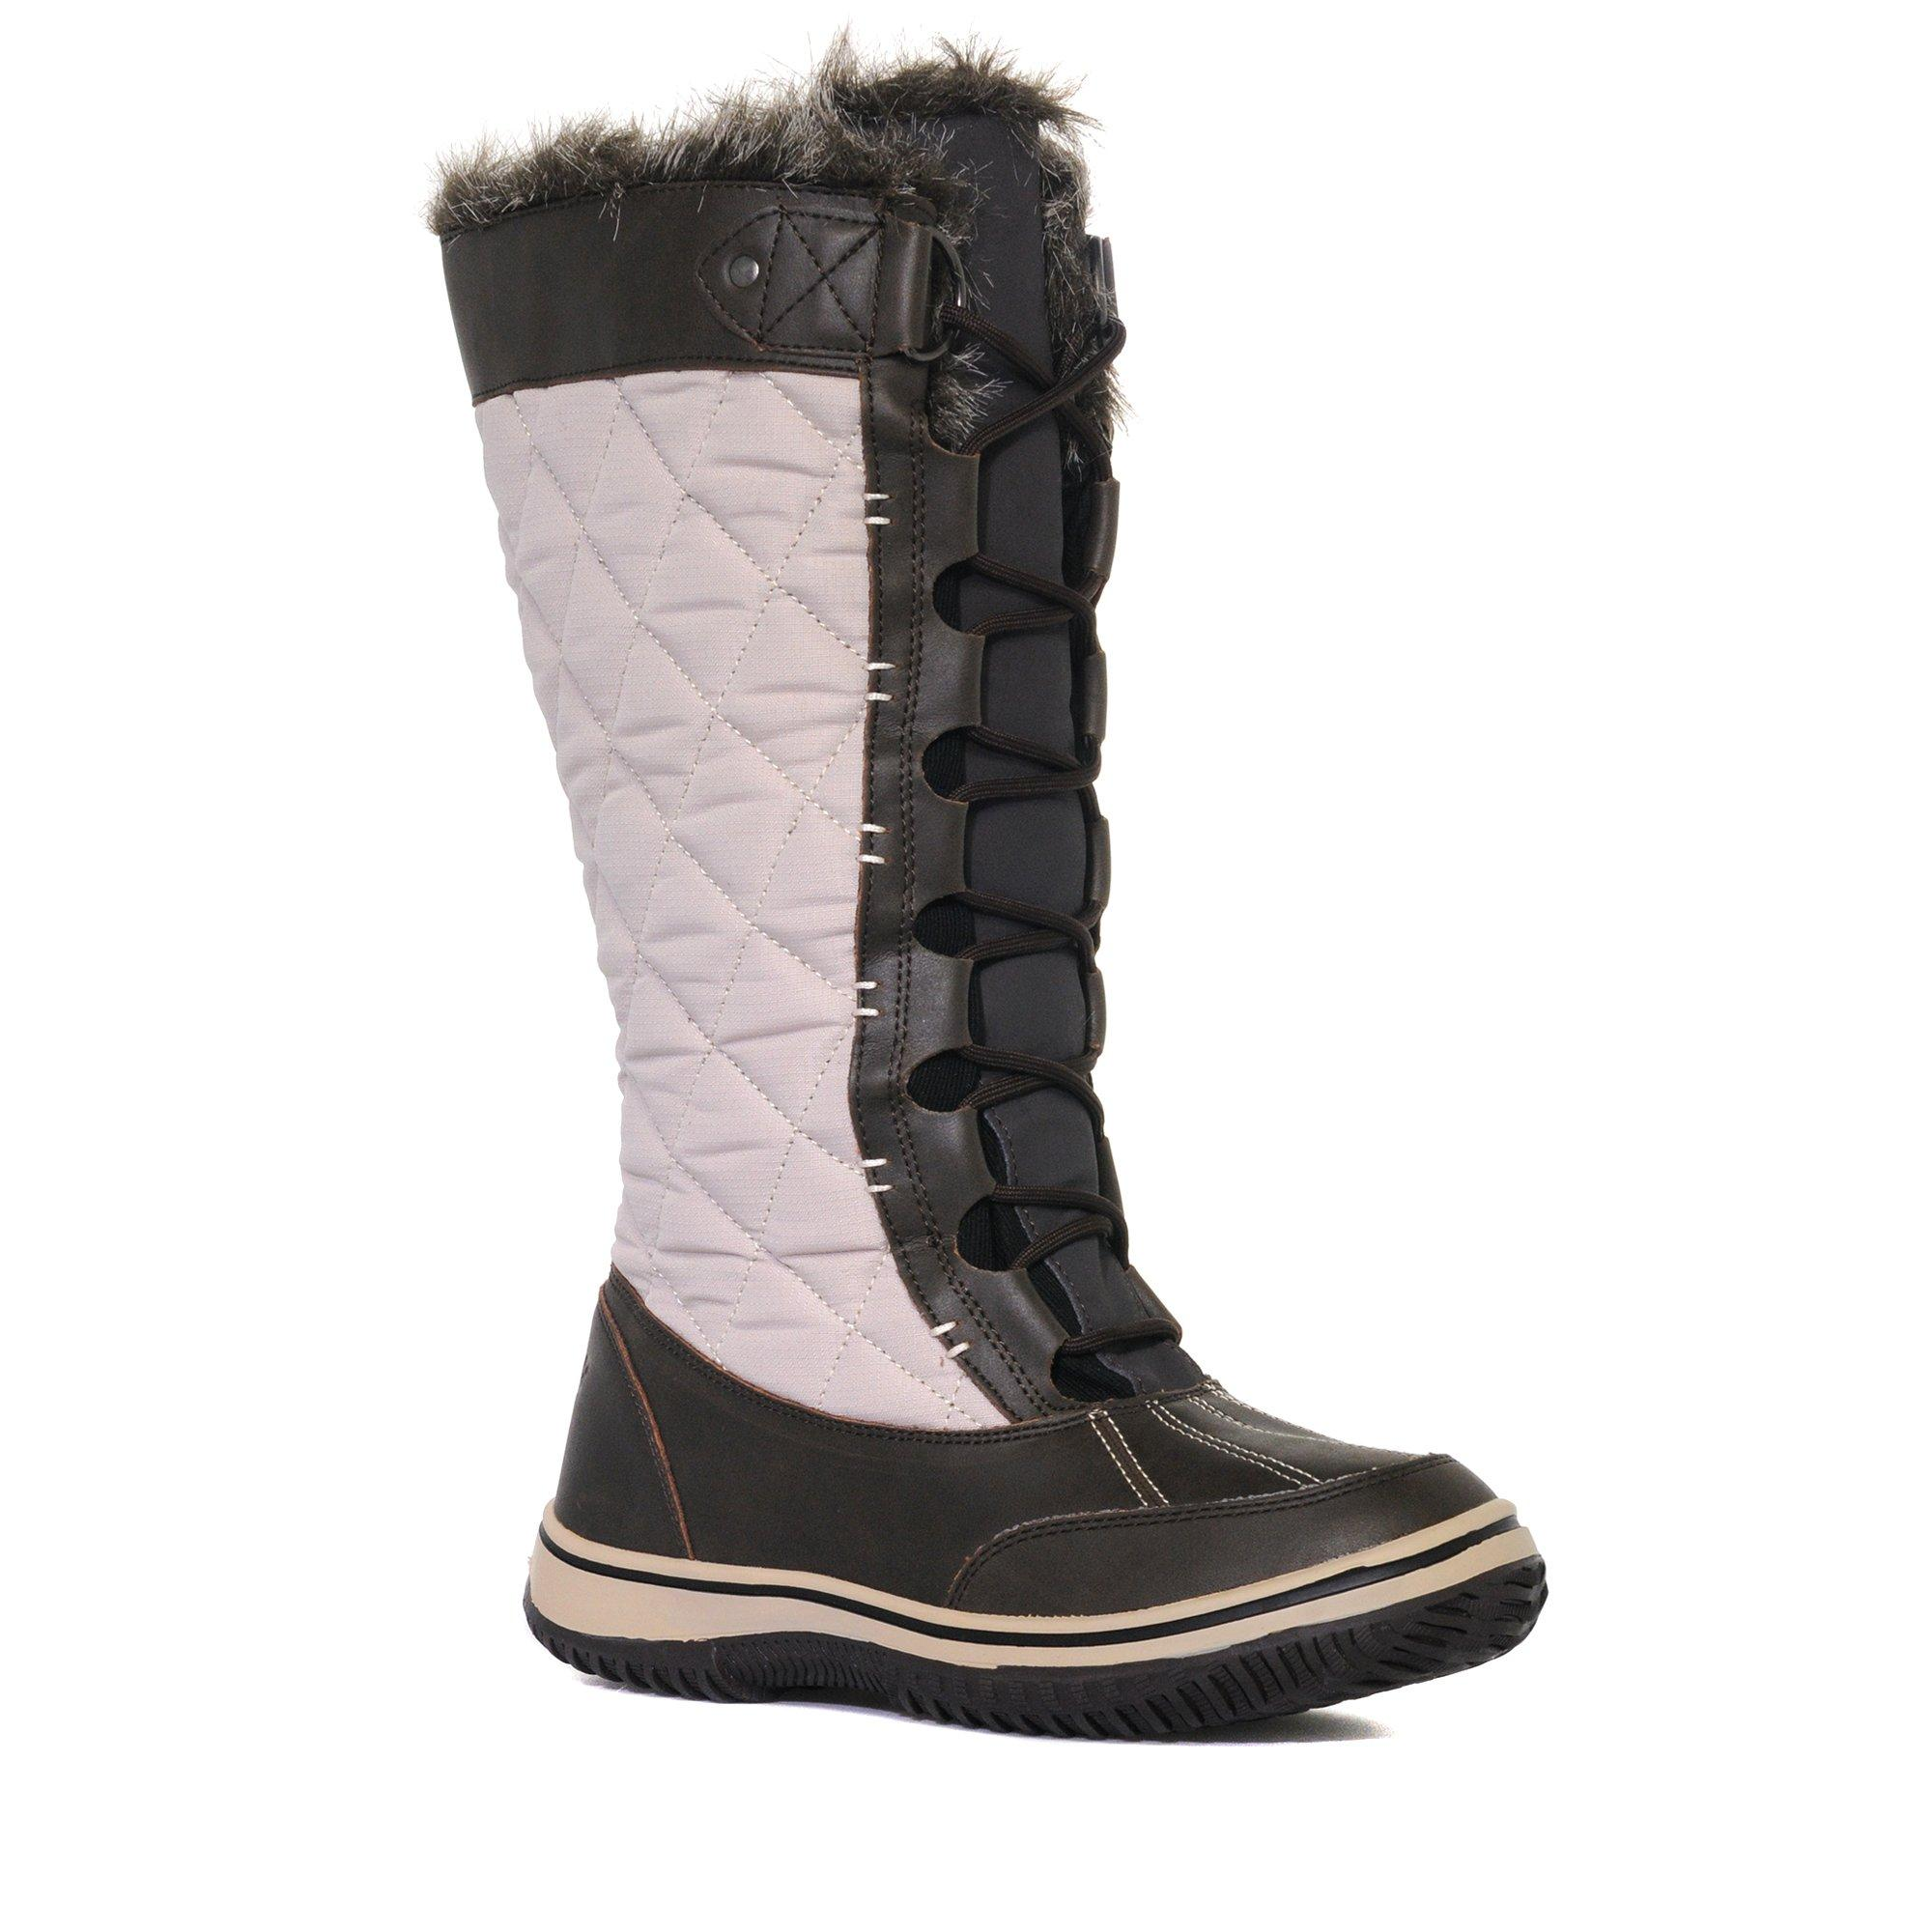 Womens Snow Boots Size 9 - Boot Yc